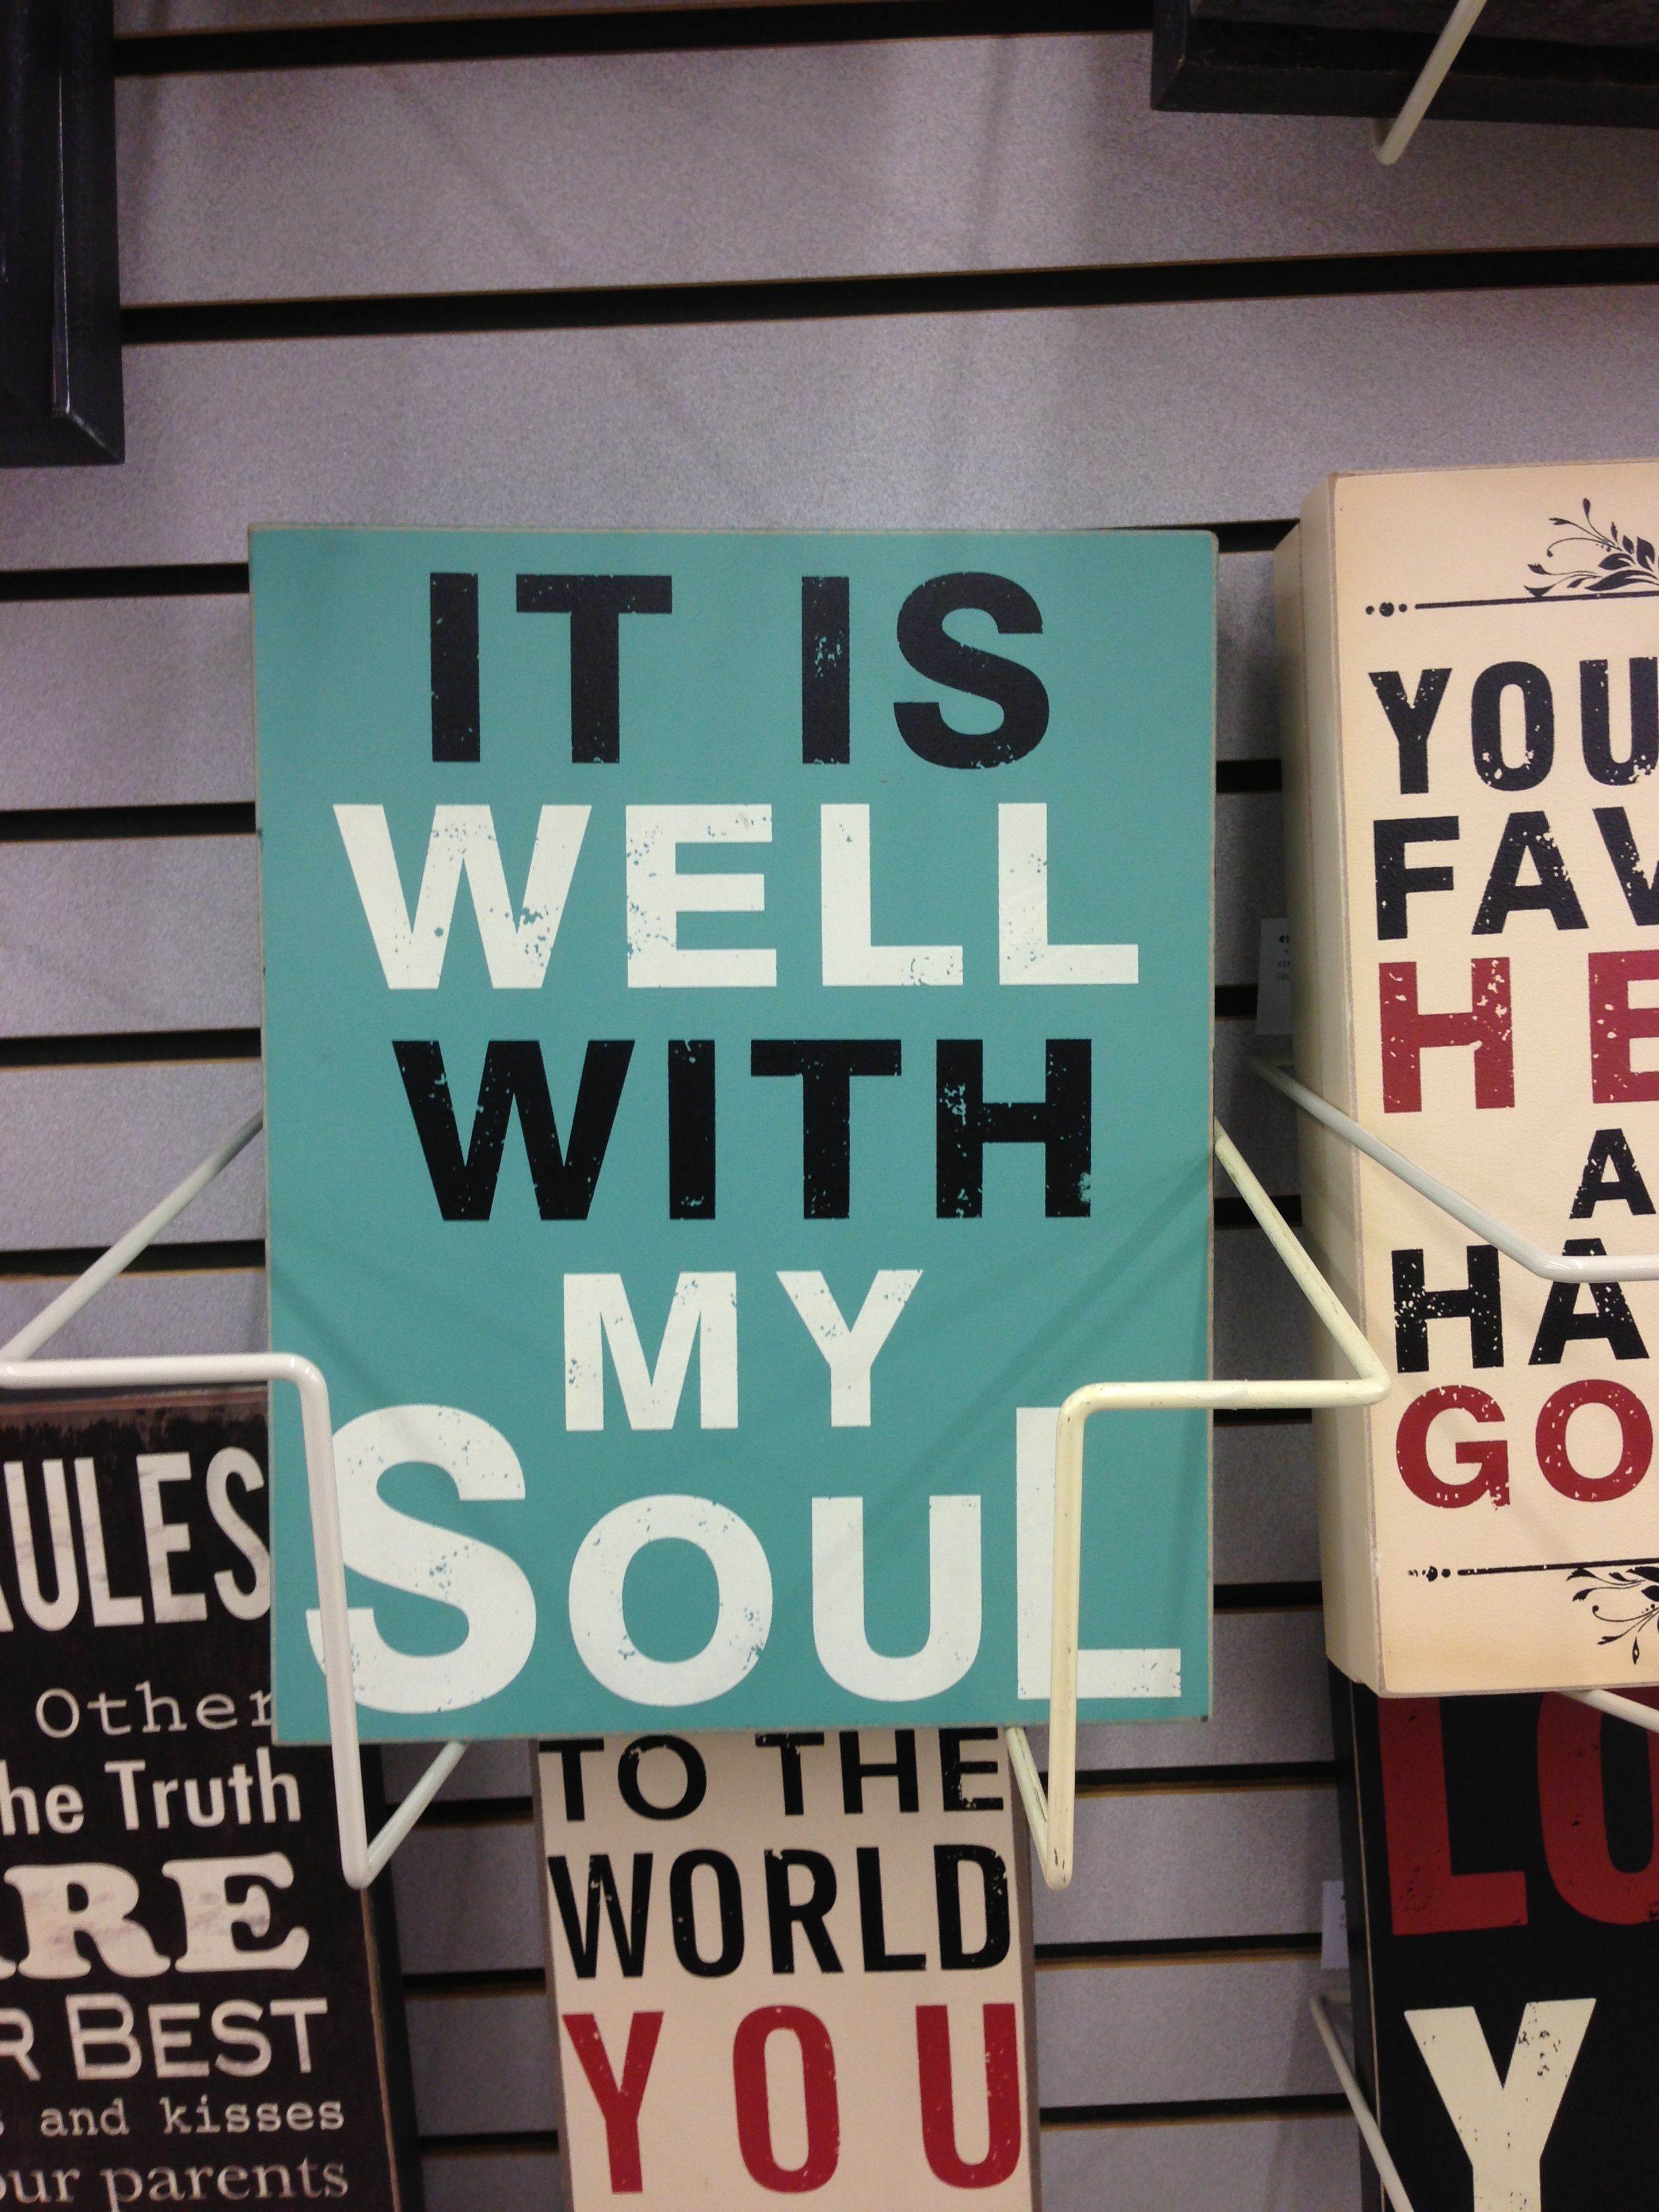 At hobby lobby want this sign it is well with my